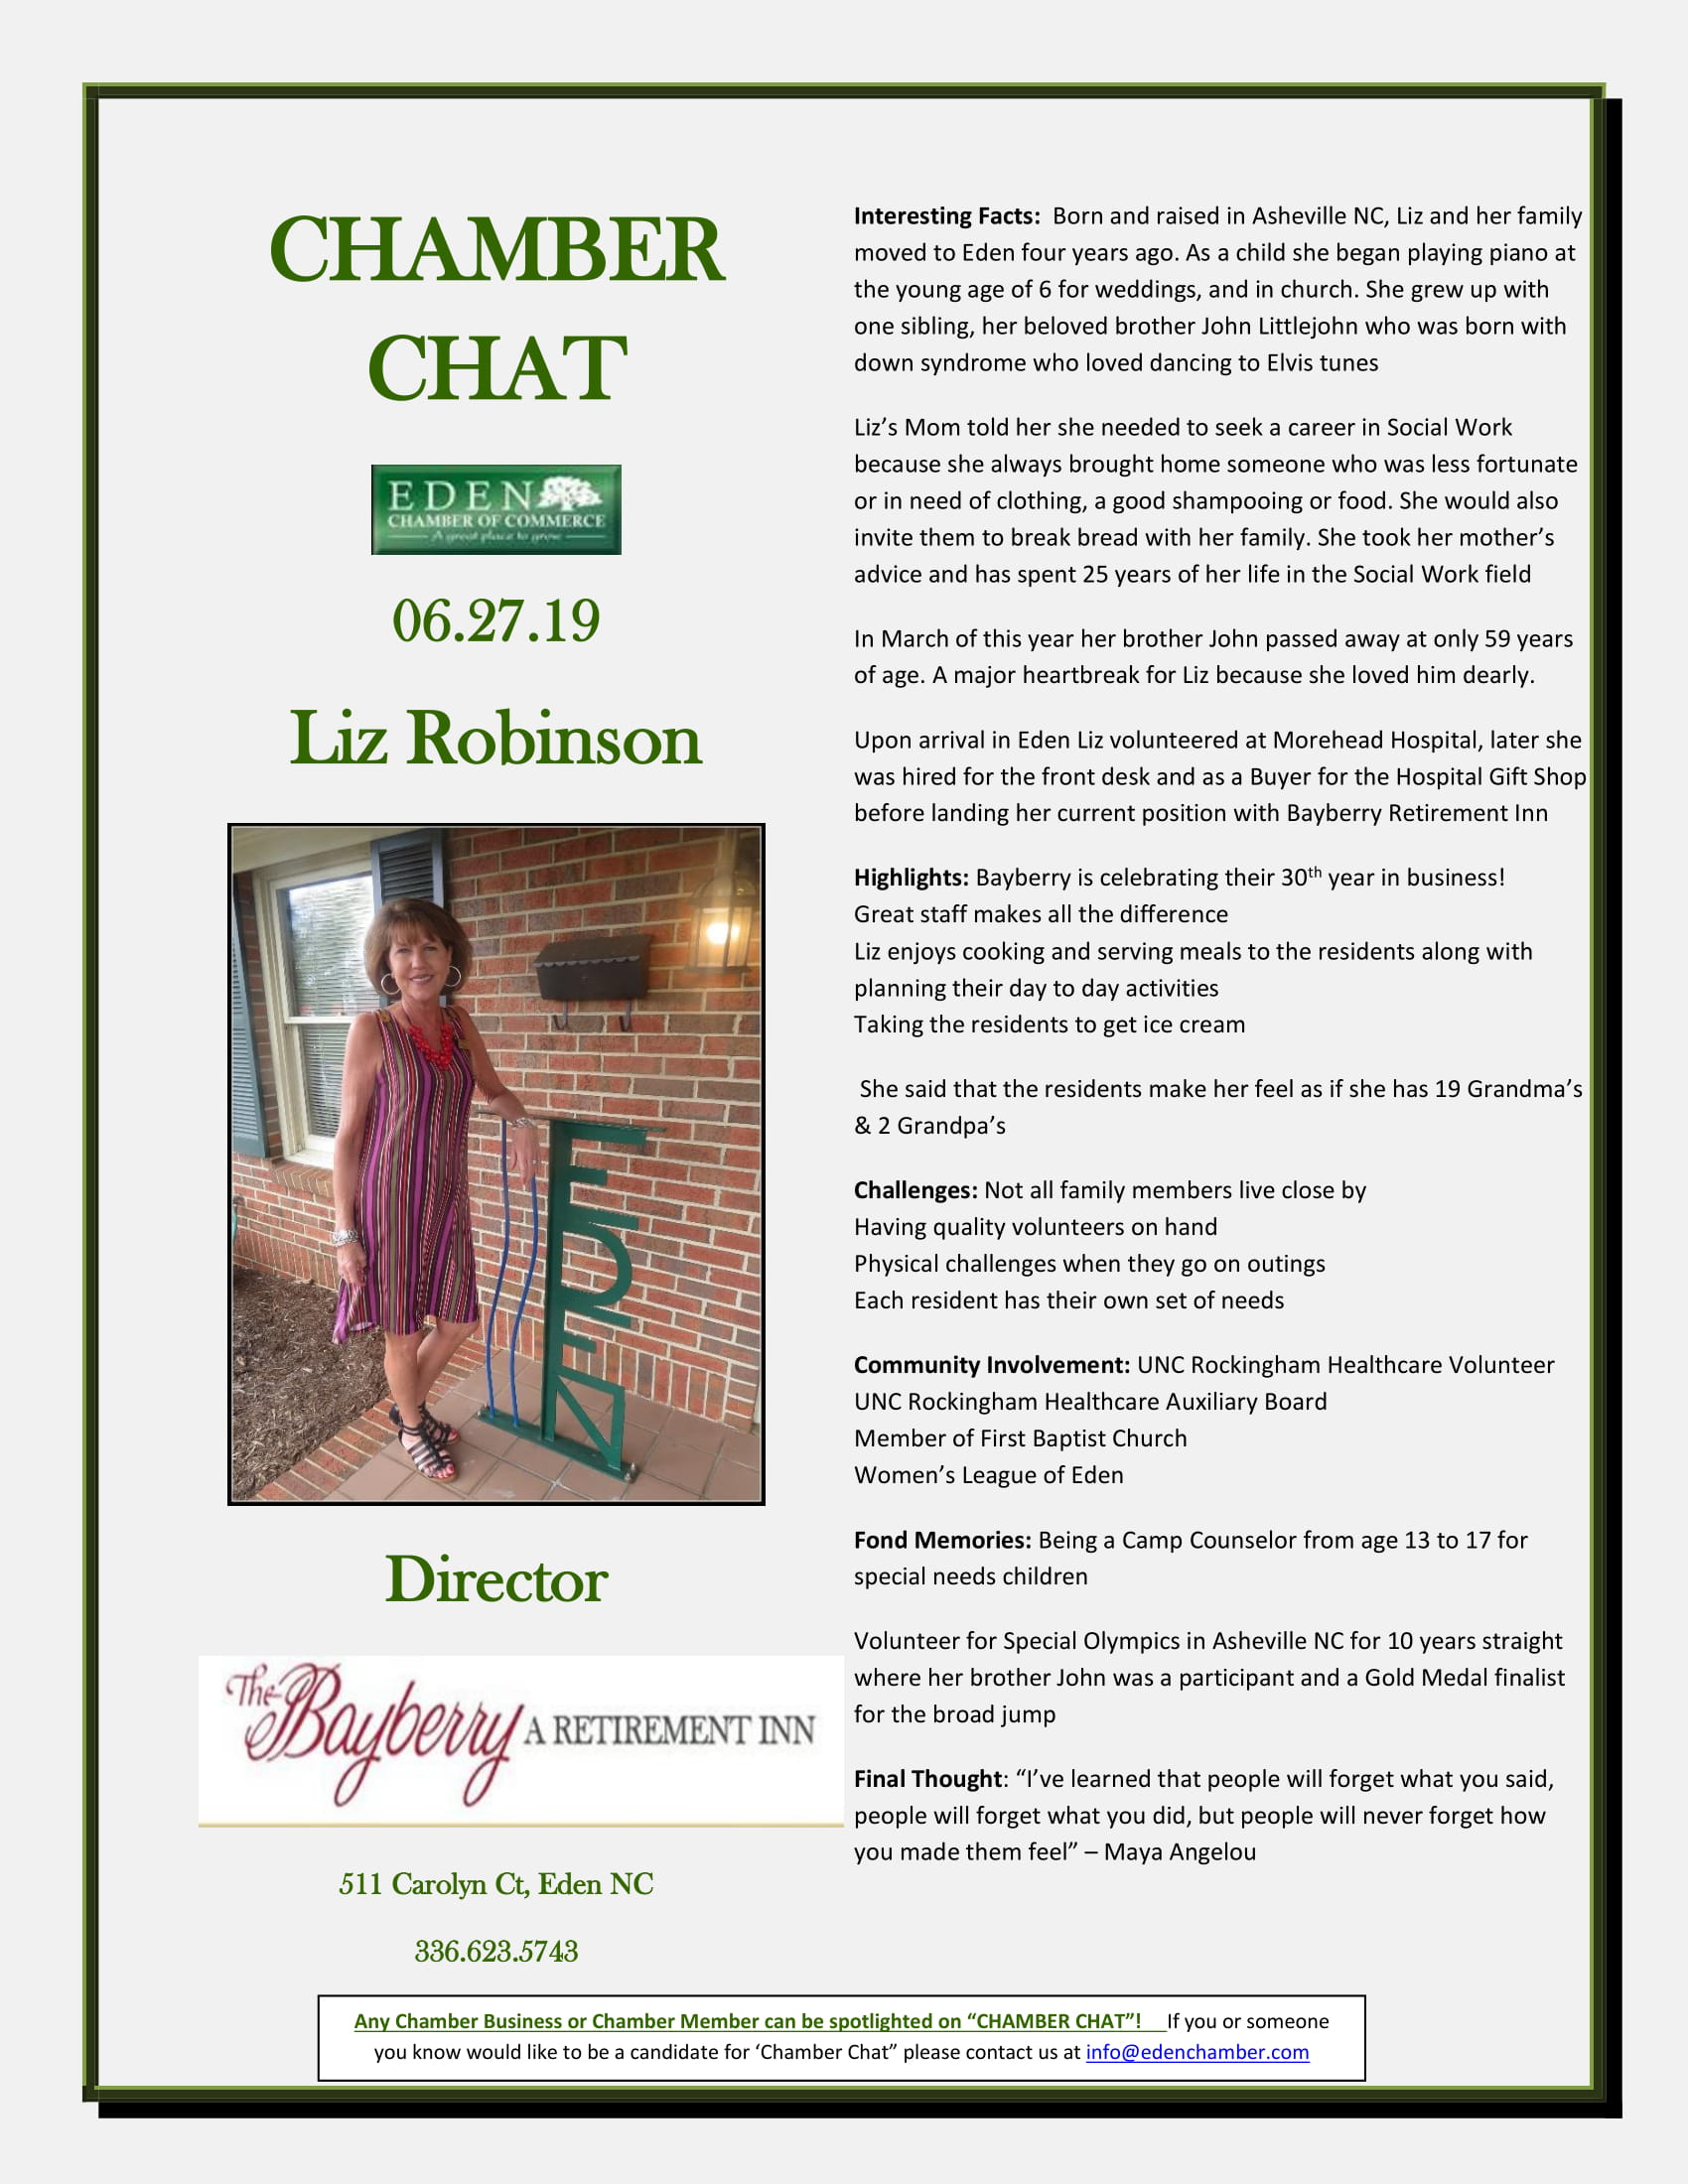 CHAMBER-CHAT-Liz-Robinson--Bayberry-Inn-1